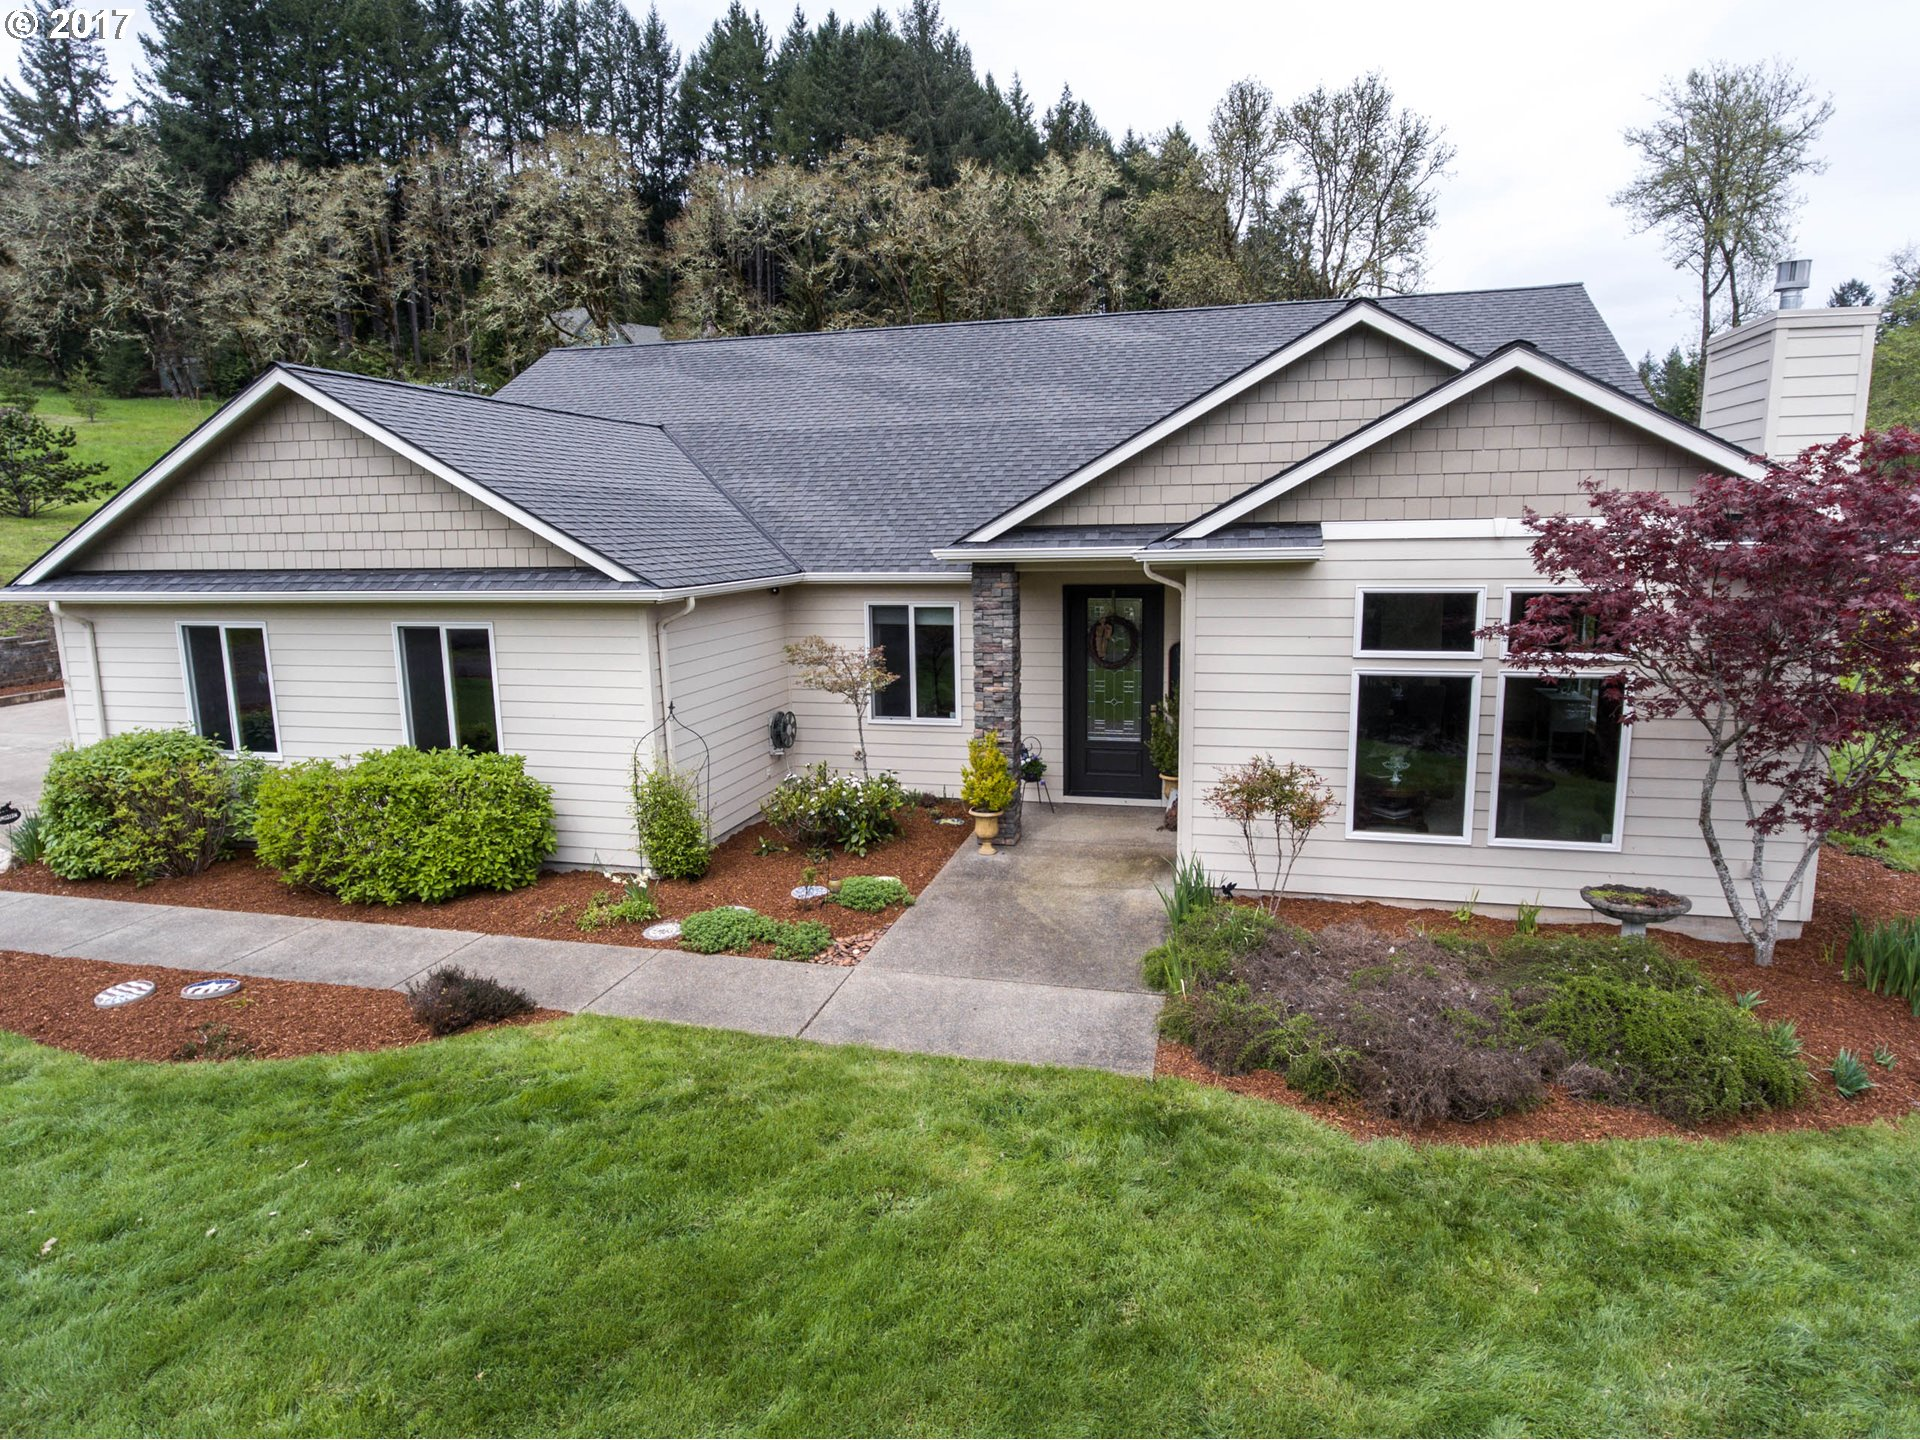 15200 NW MOUNTAIN MEADOW RD, McMinnville, OR 97128